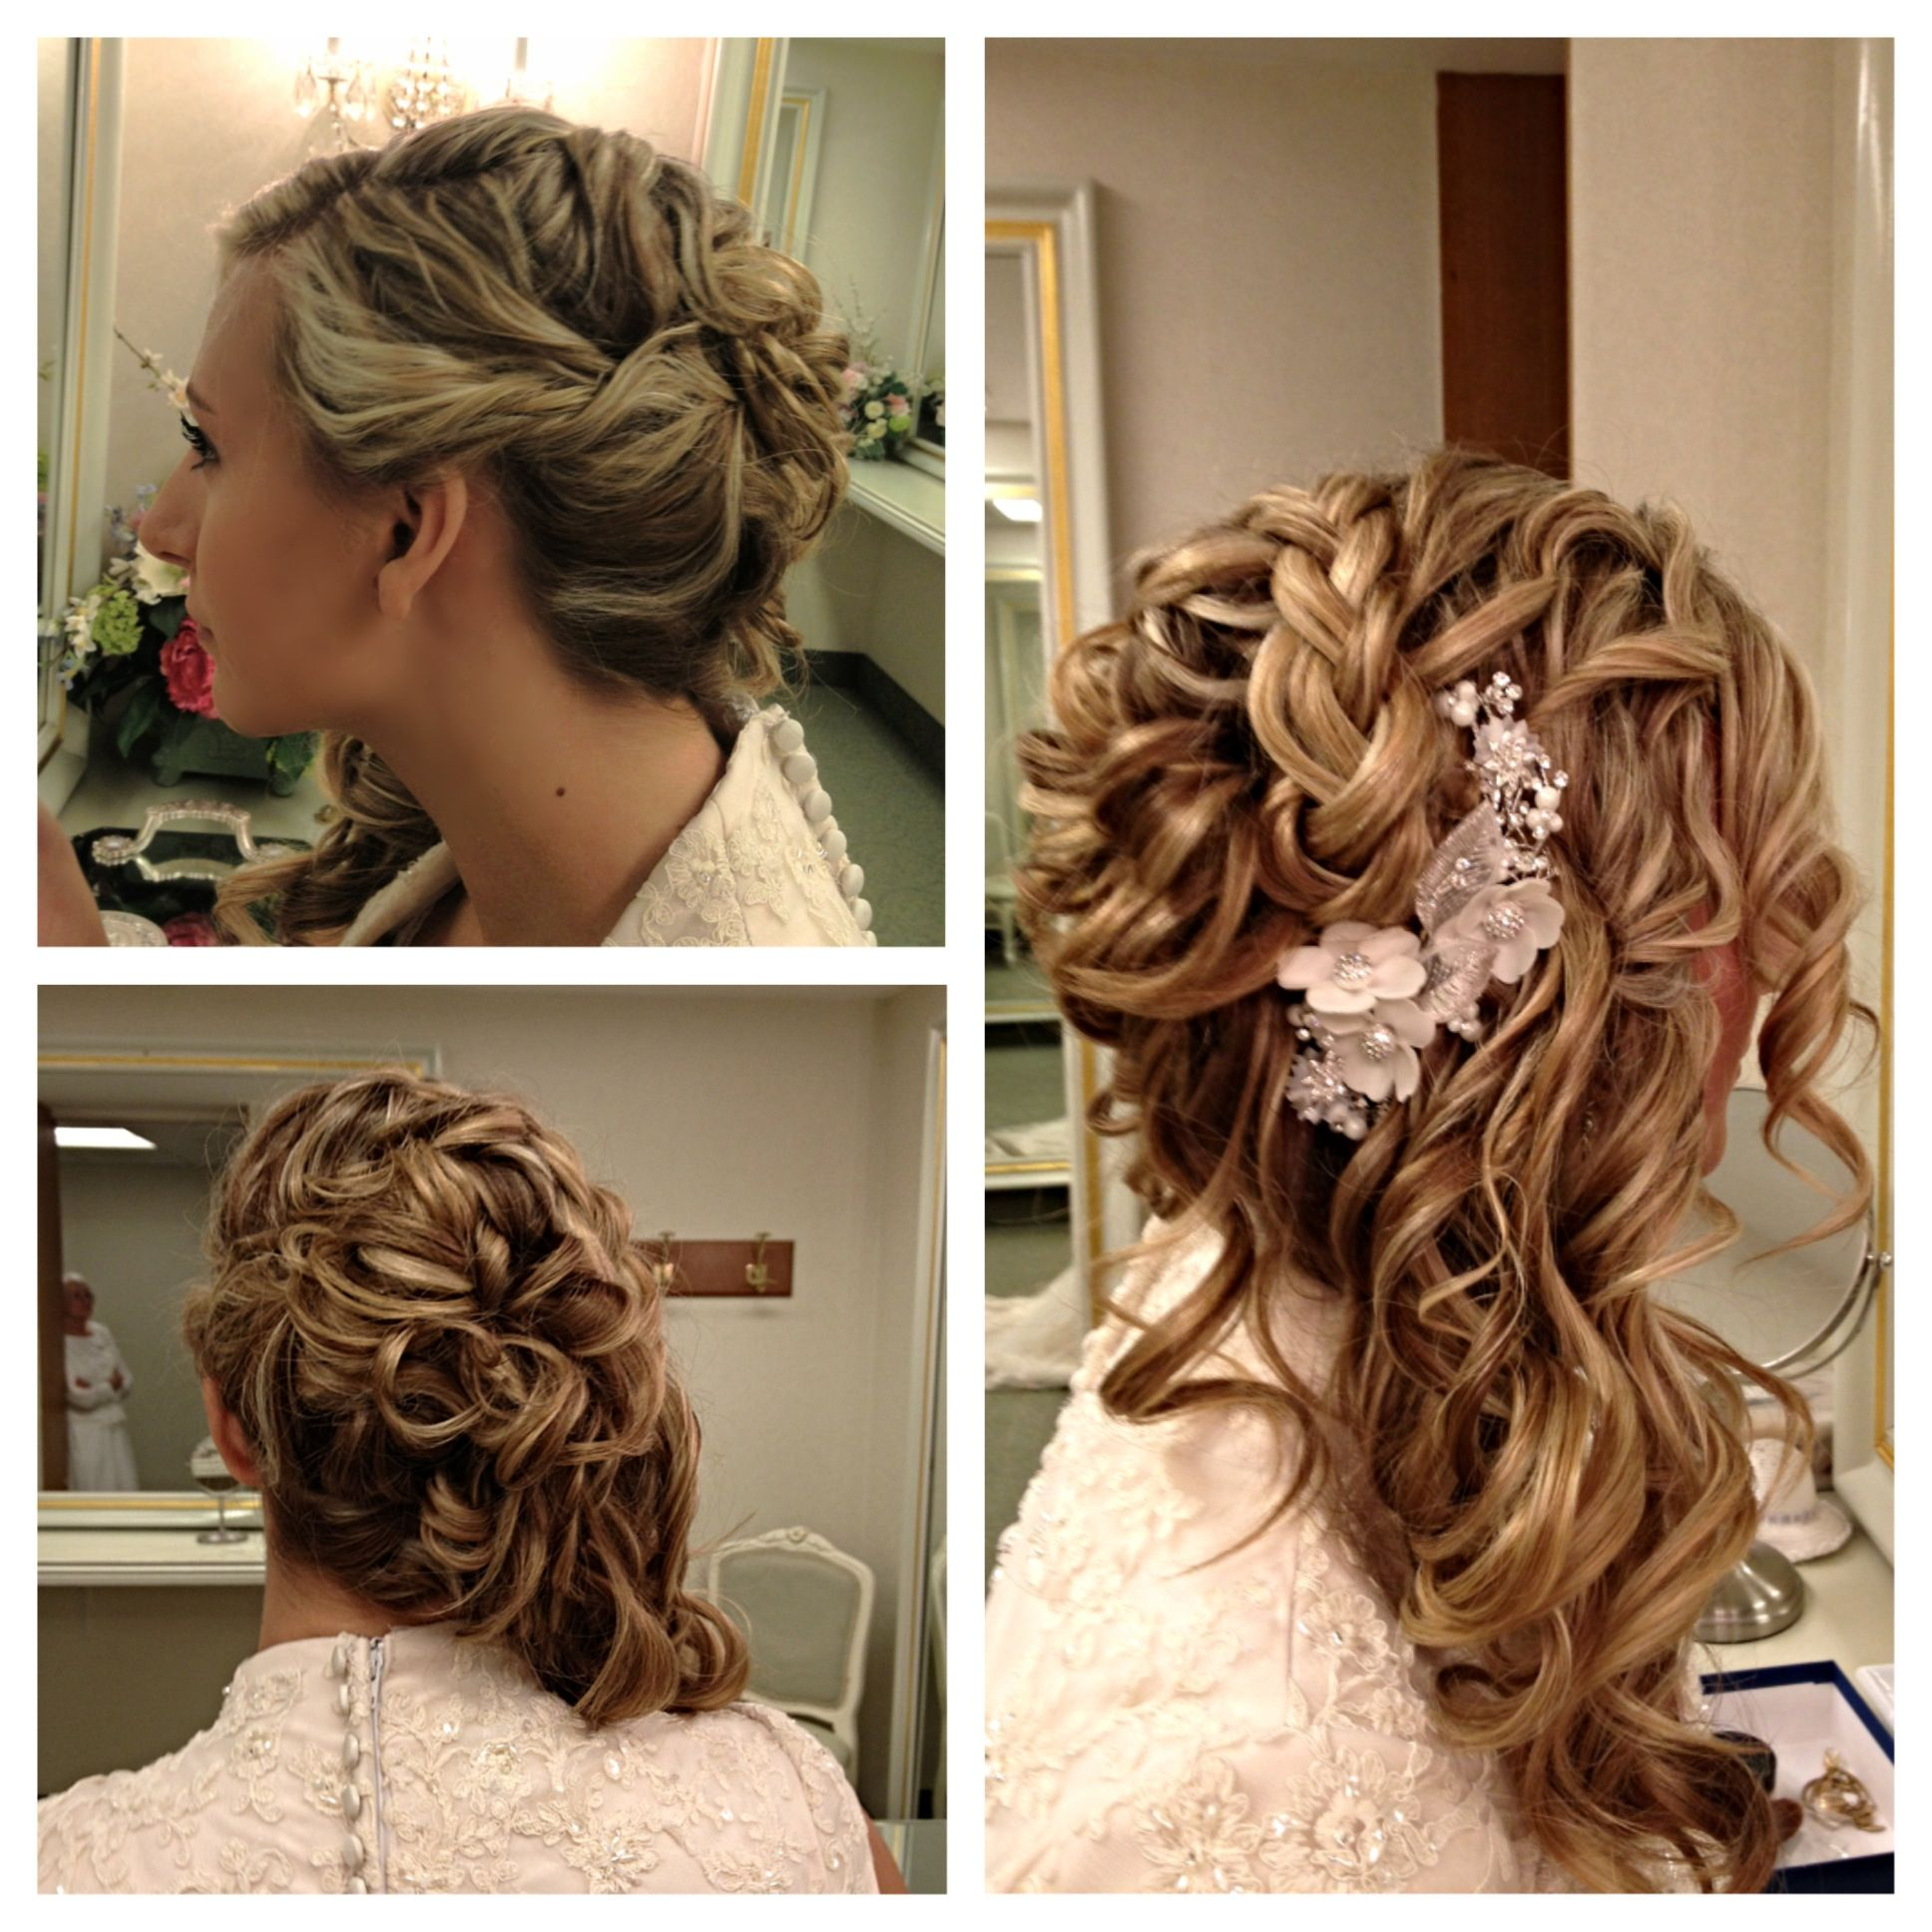 my wedding hairdo!!! side-swept wedding hair style that is